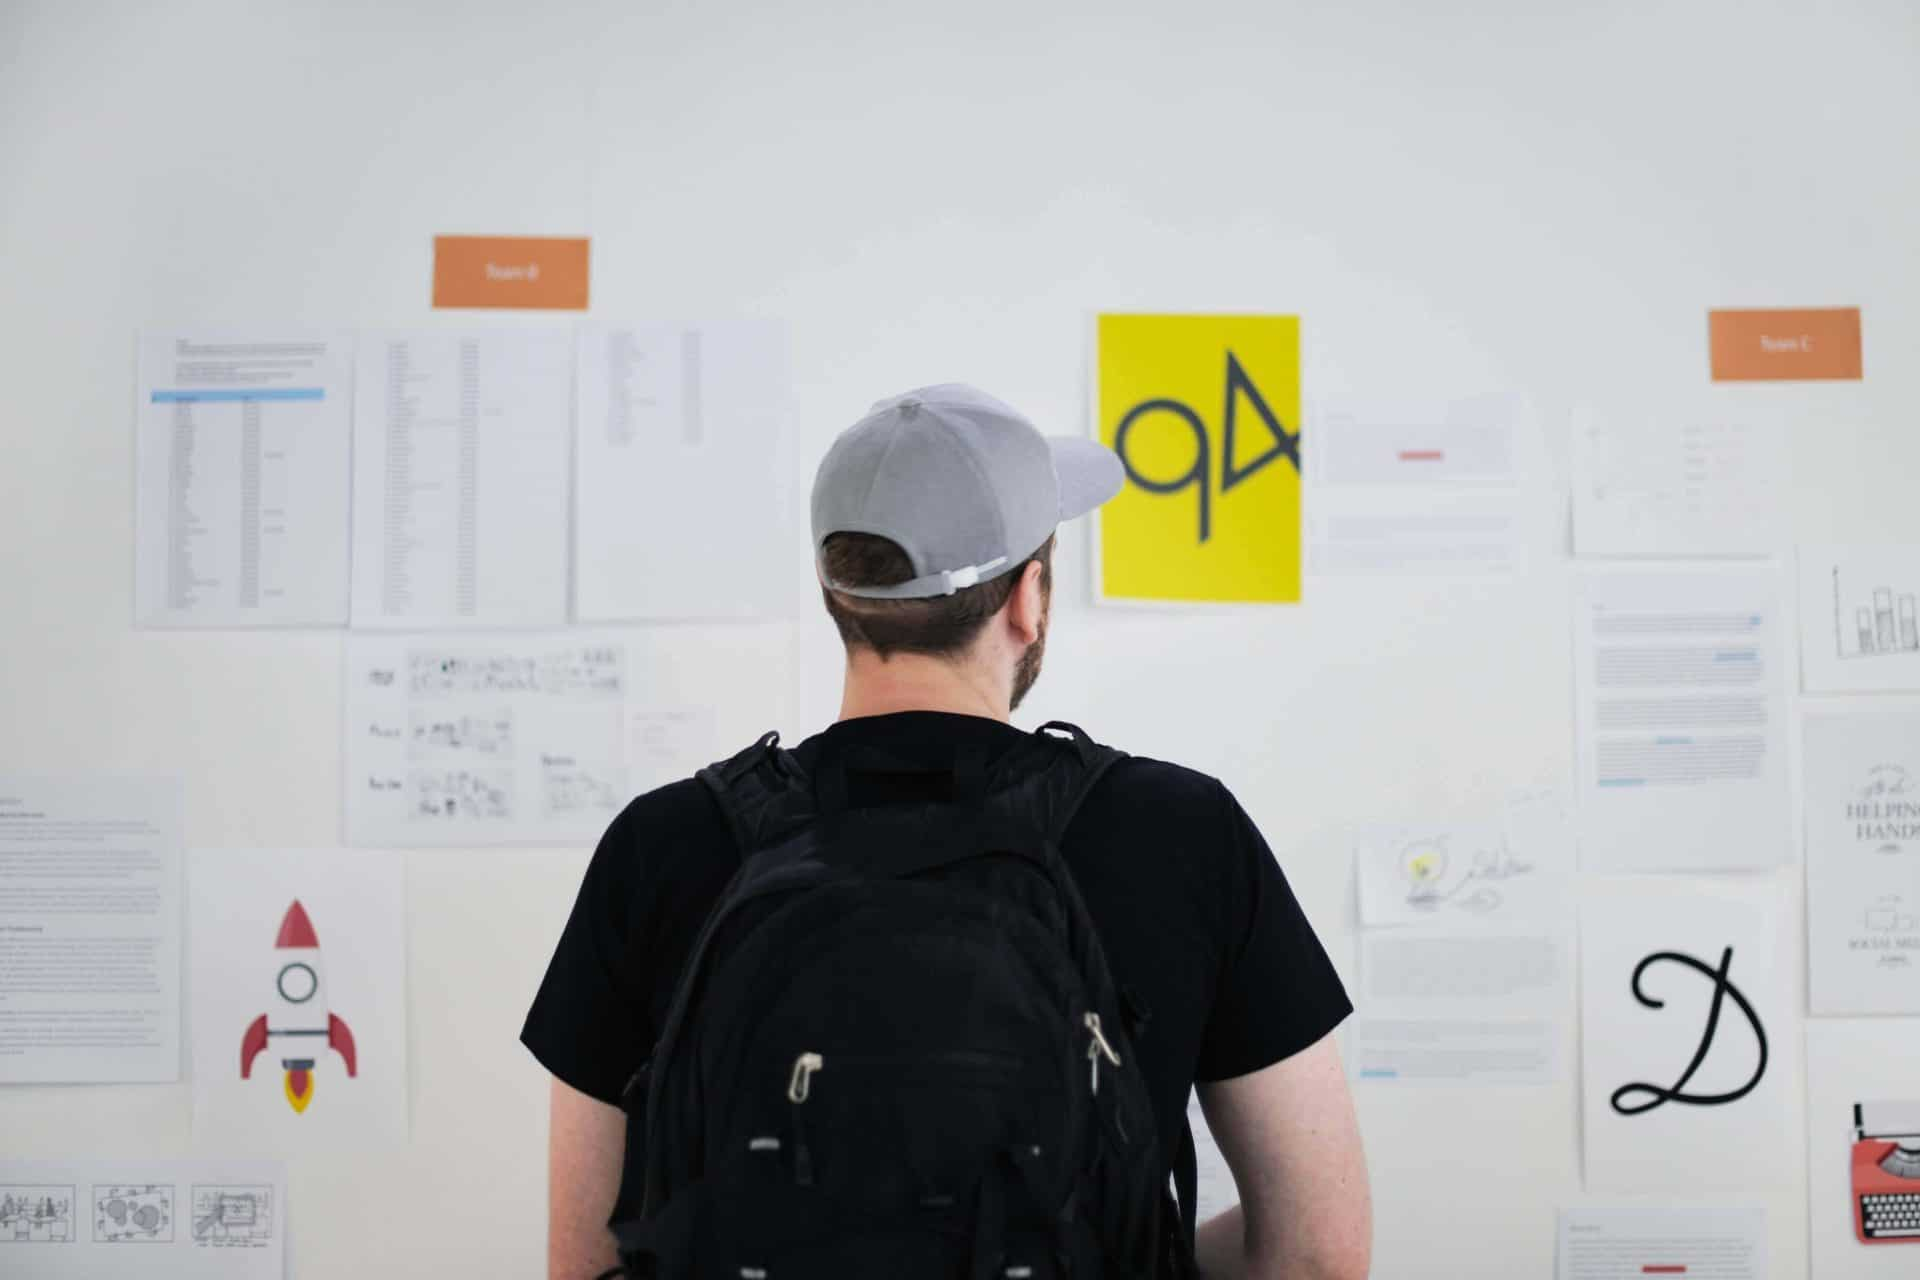 Guide to UX prototyping